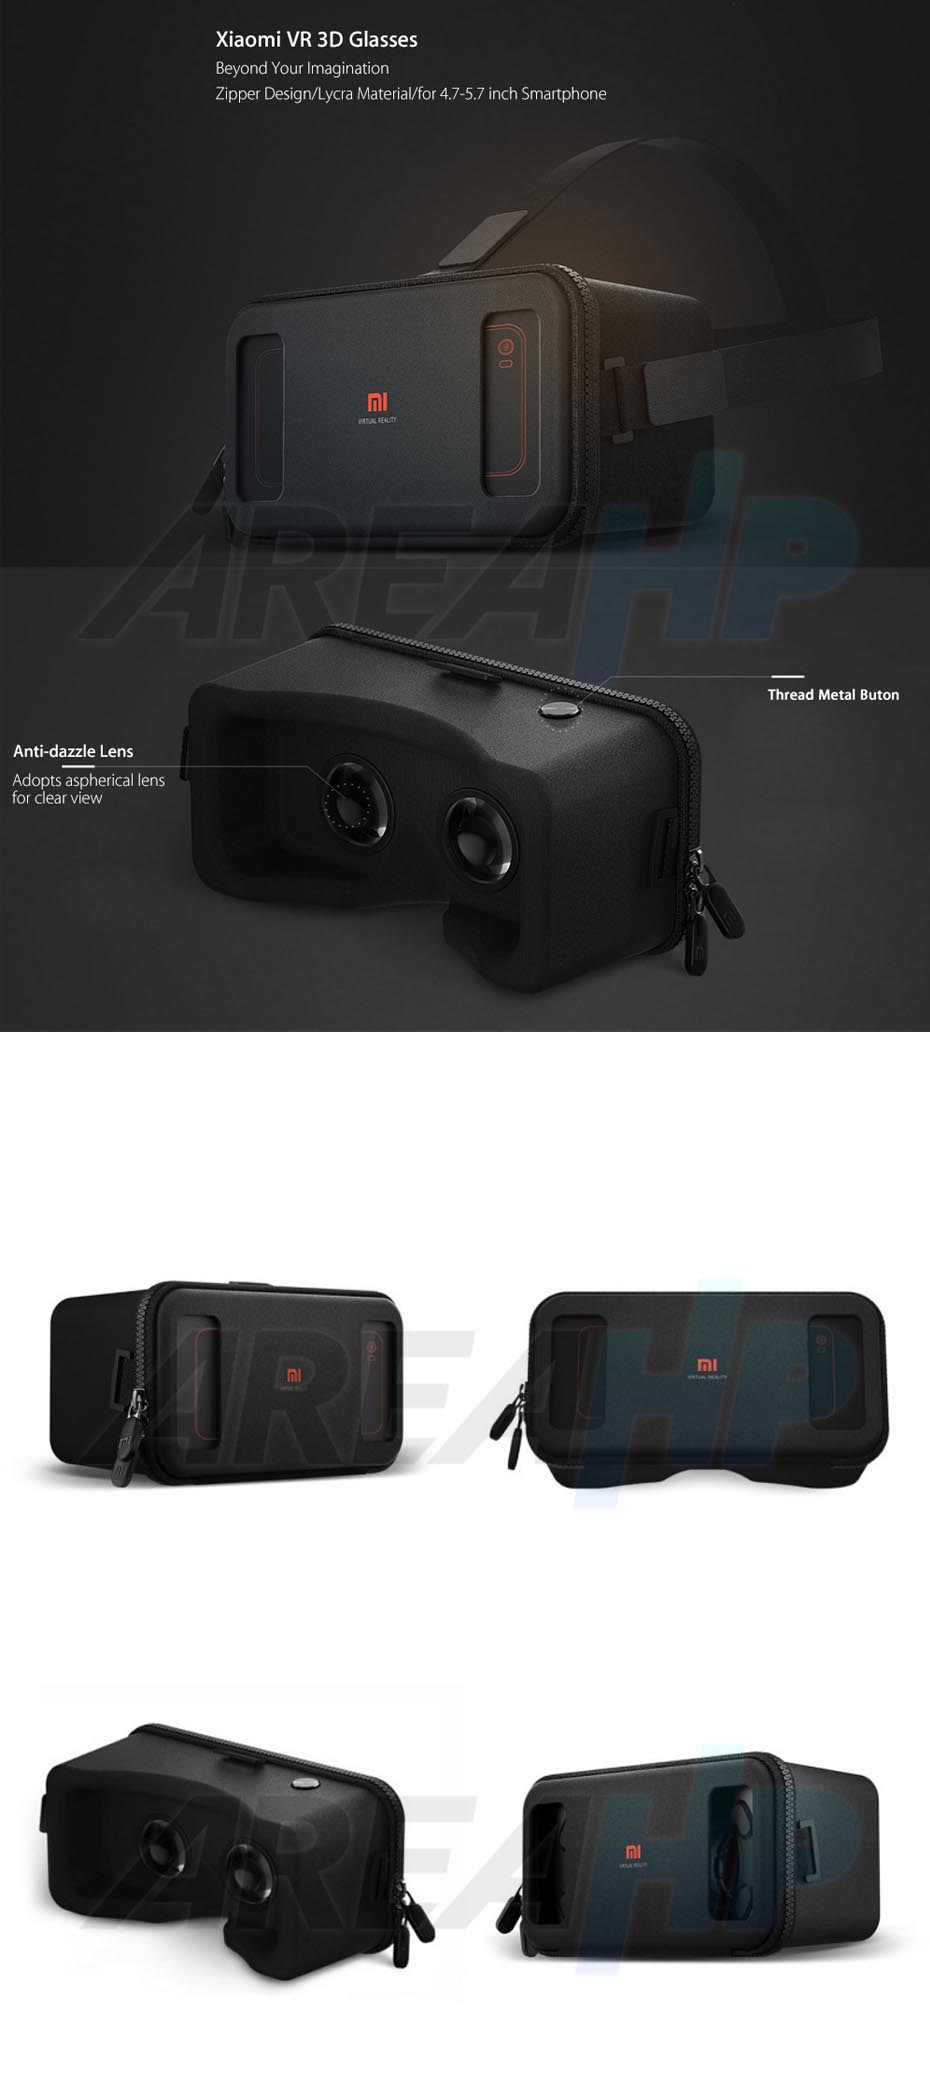 Xiaomi VR Glass 3D Virtual Reality Headset Glasses (Original) Overview